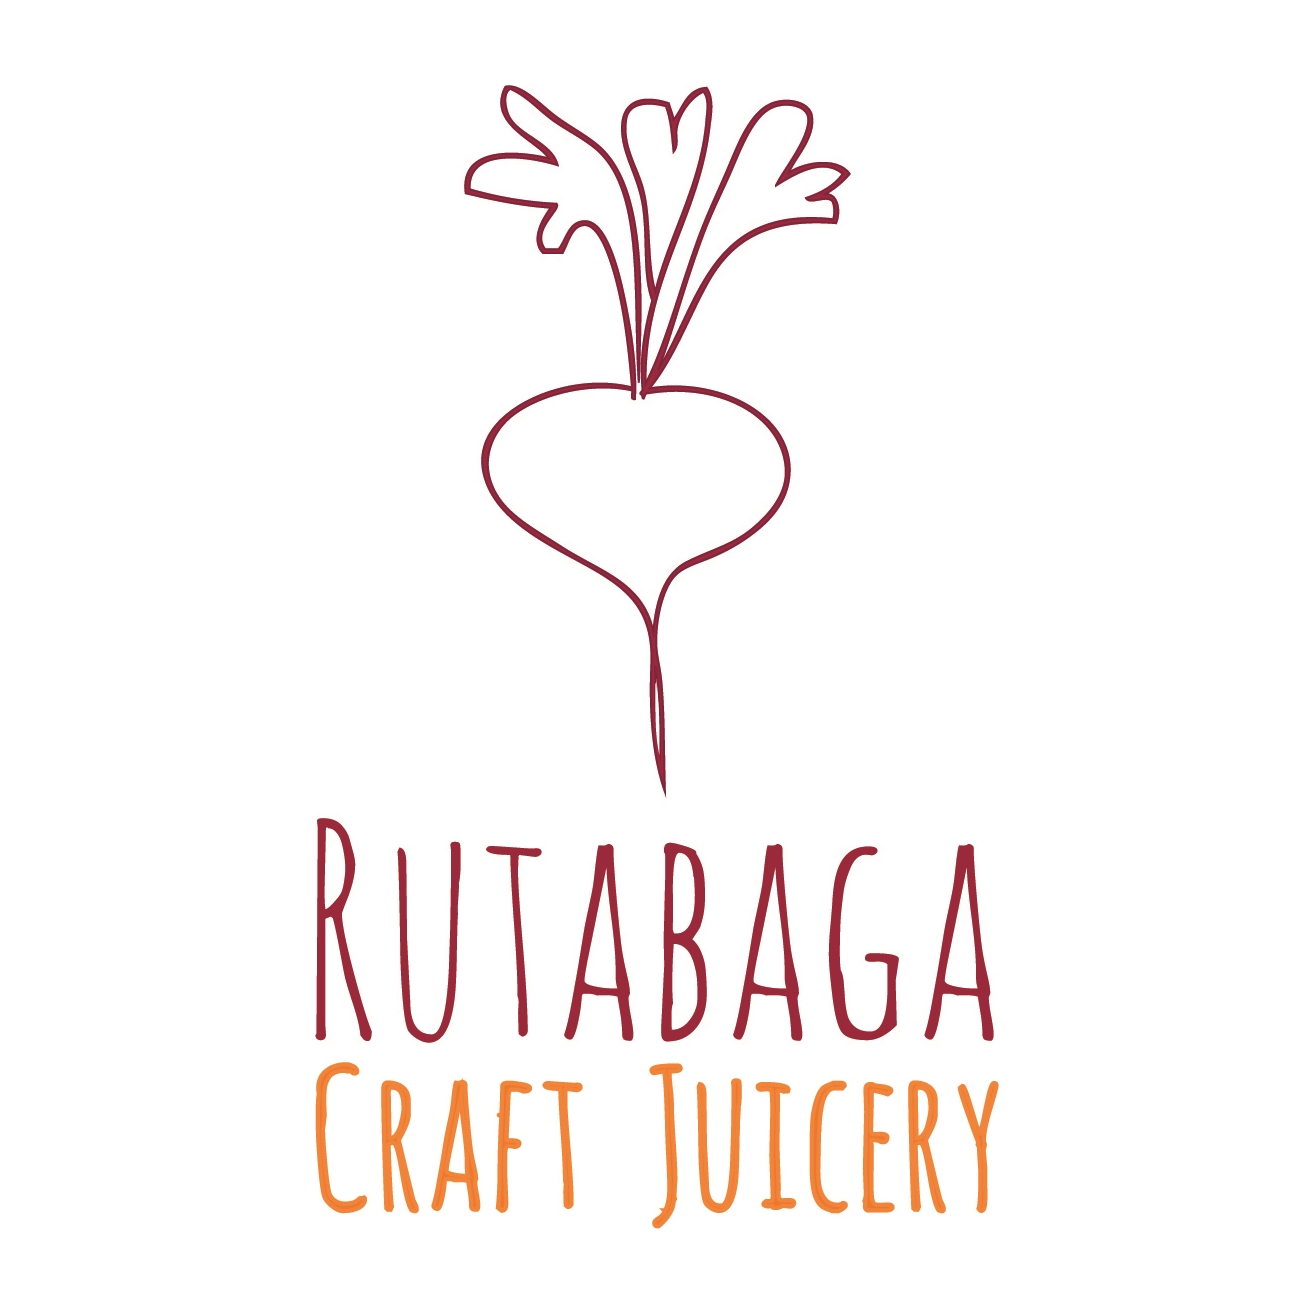 Rutabaga Craft Juicery